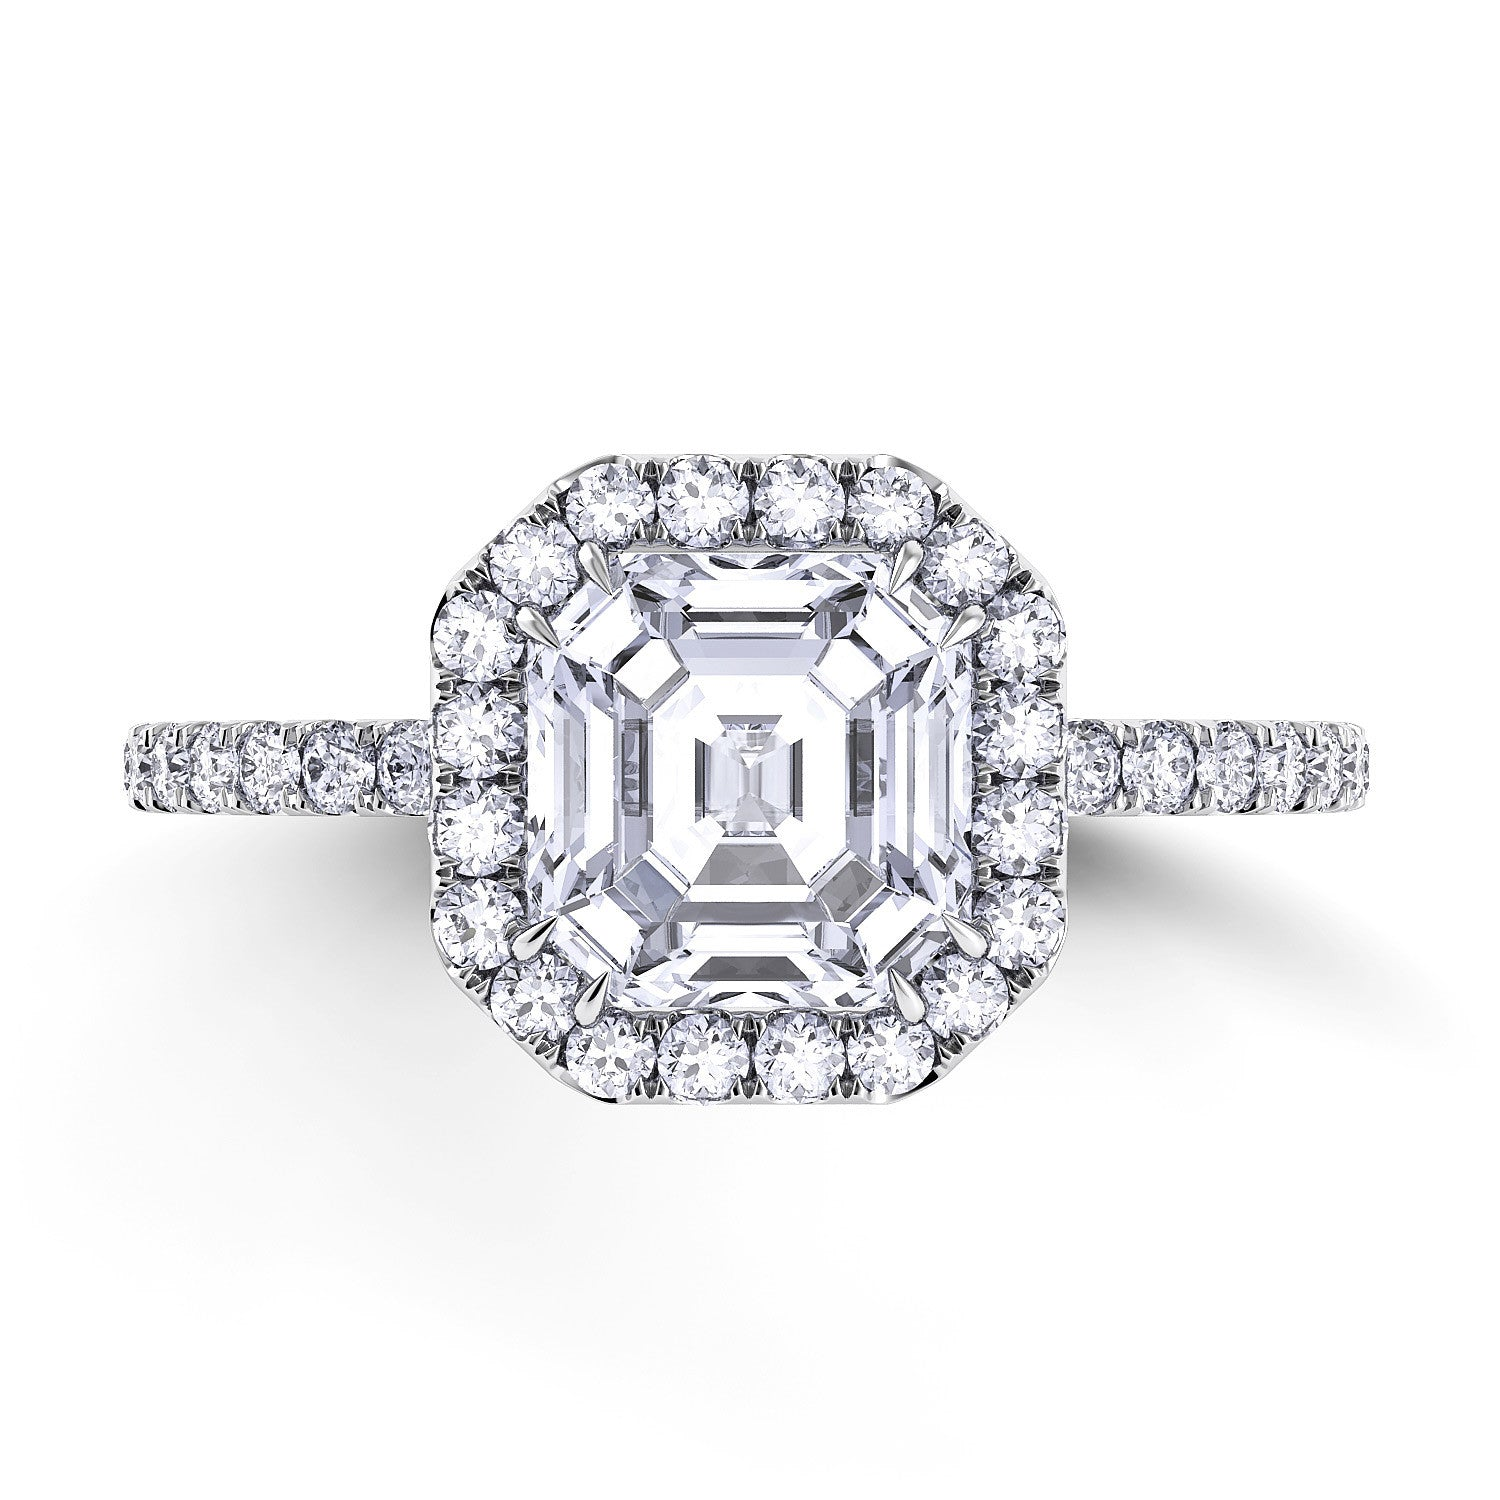 jewelry id z deco diamond art j in sale rings for engagement at cut platinum asscher ring